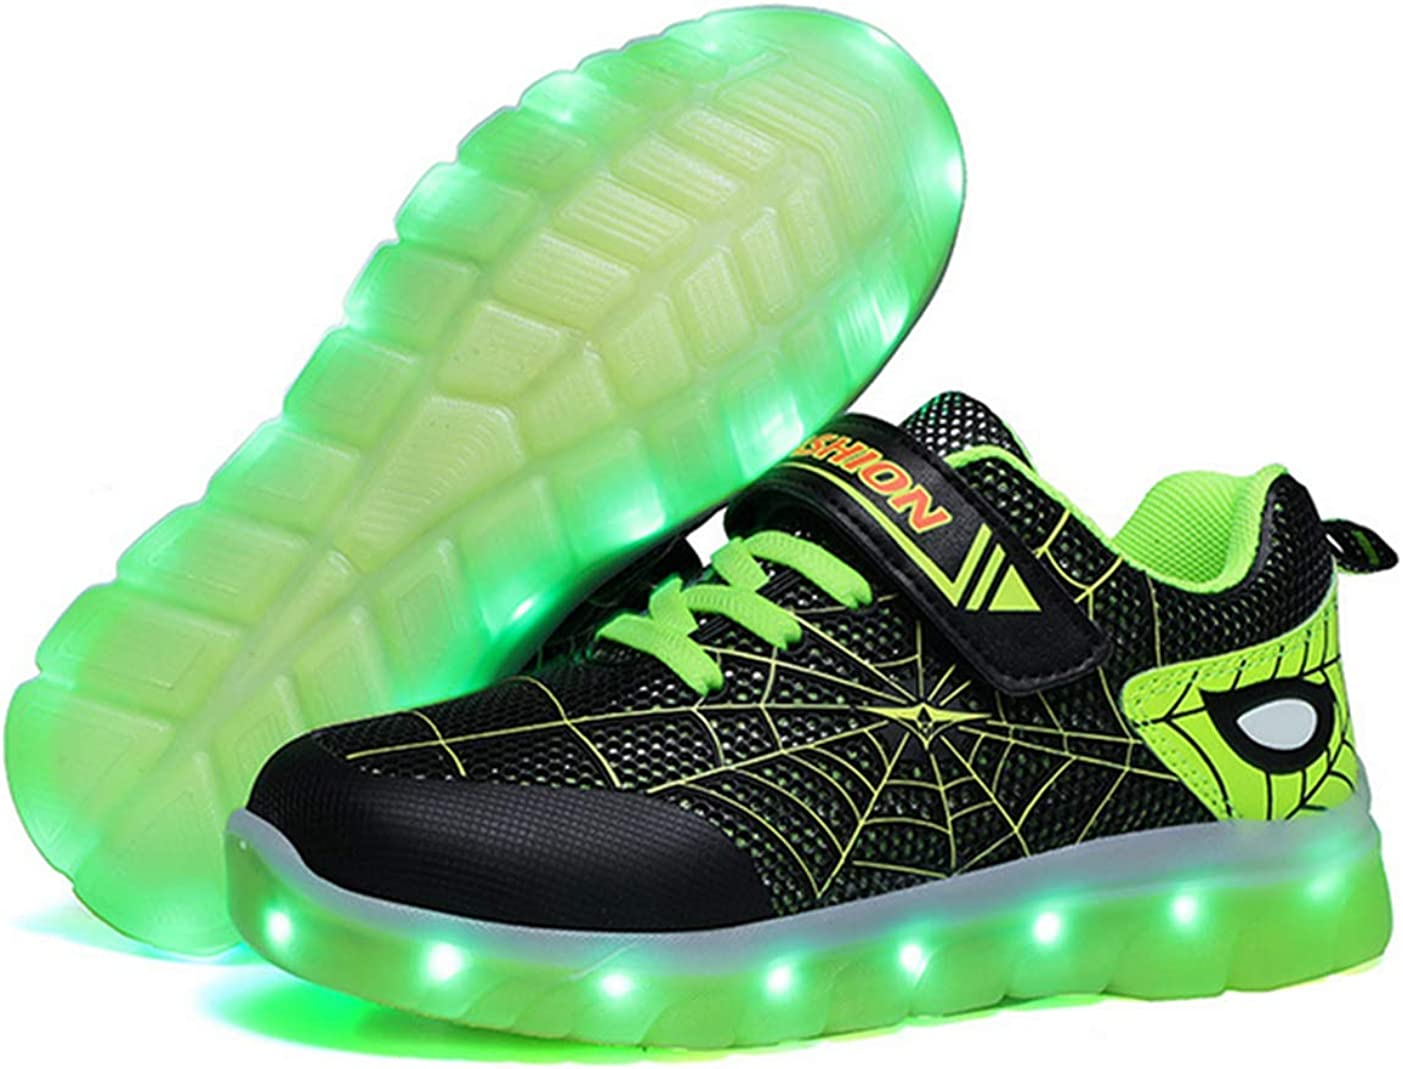 Zapatillas deportivas luminosas para niños [2020 Nueva Versión] recargables, luminosas, para niños y niñas, New Spiderman, color Verde, talla 18 EU: Amazon.es: Zapatos y complementos